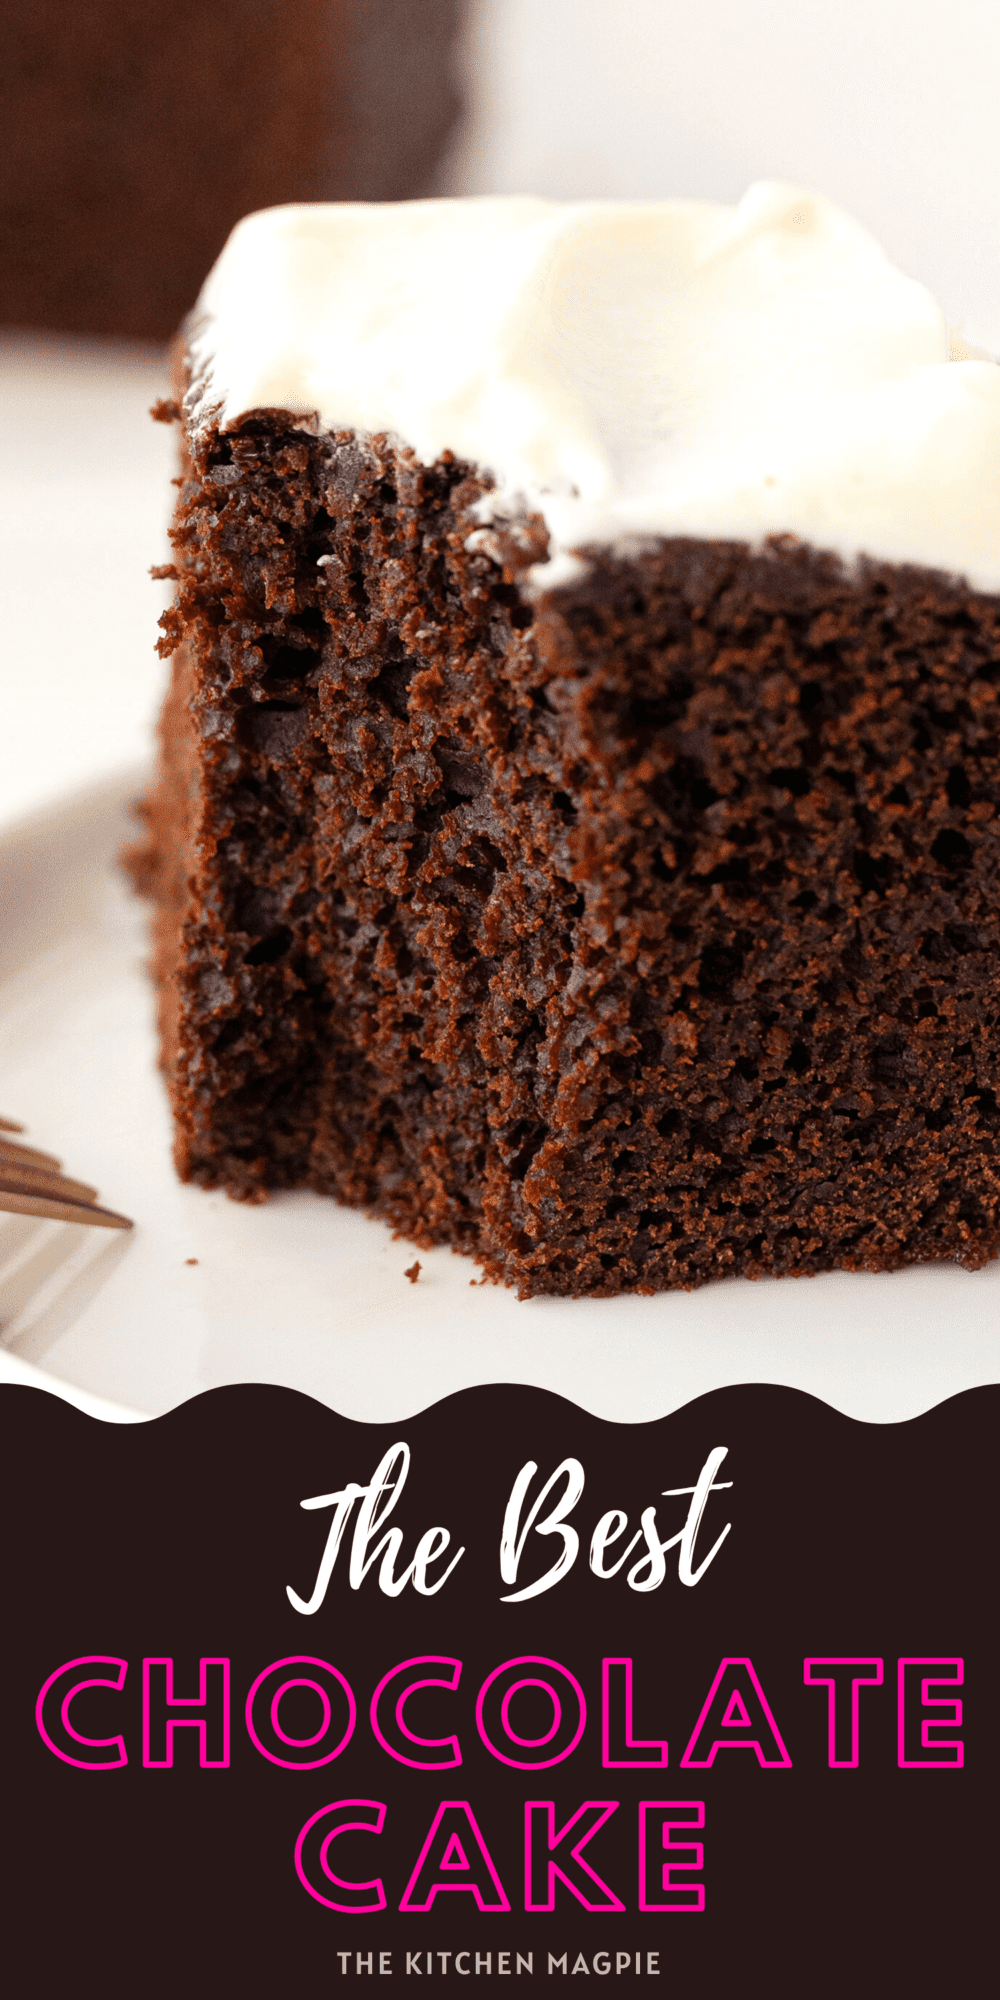 The perfect homemade chocolate cake! This chocolate cake recipe is easy to make and bakes up a perfect 9x9 pan of chocolatey, delicious, moist cake!